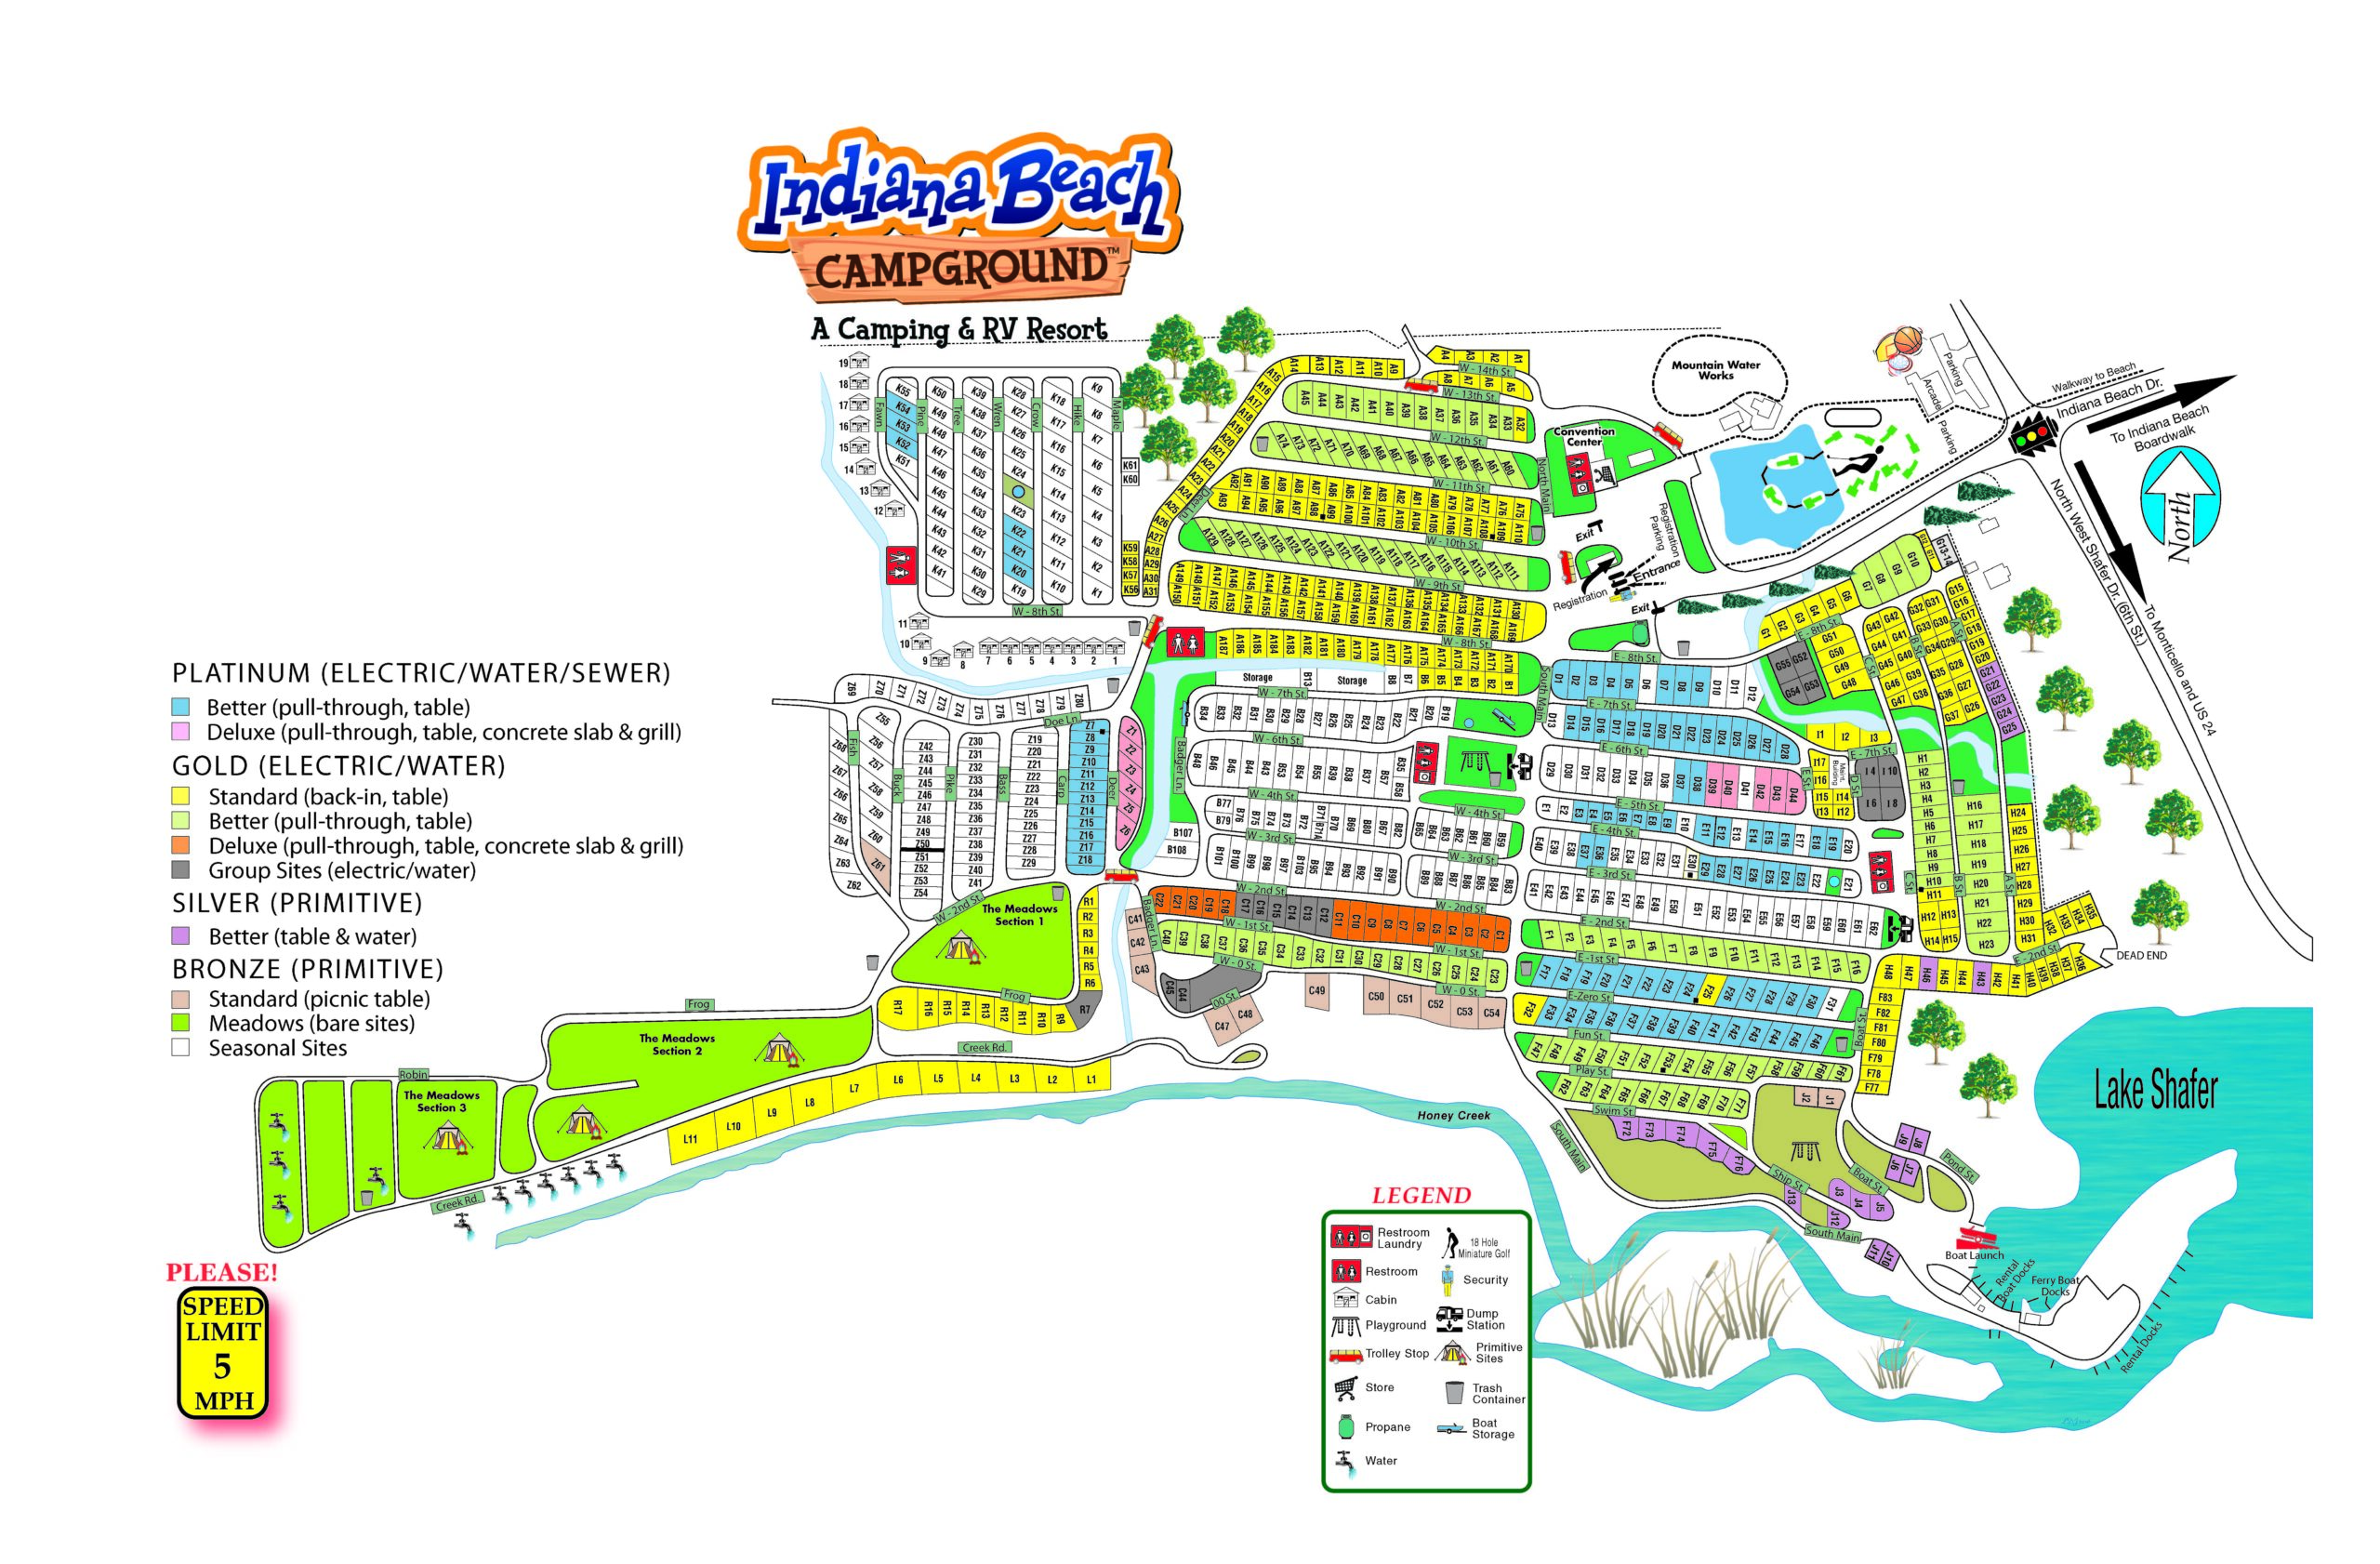 Indiana Beach campground map